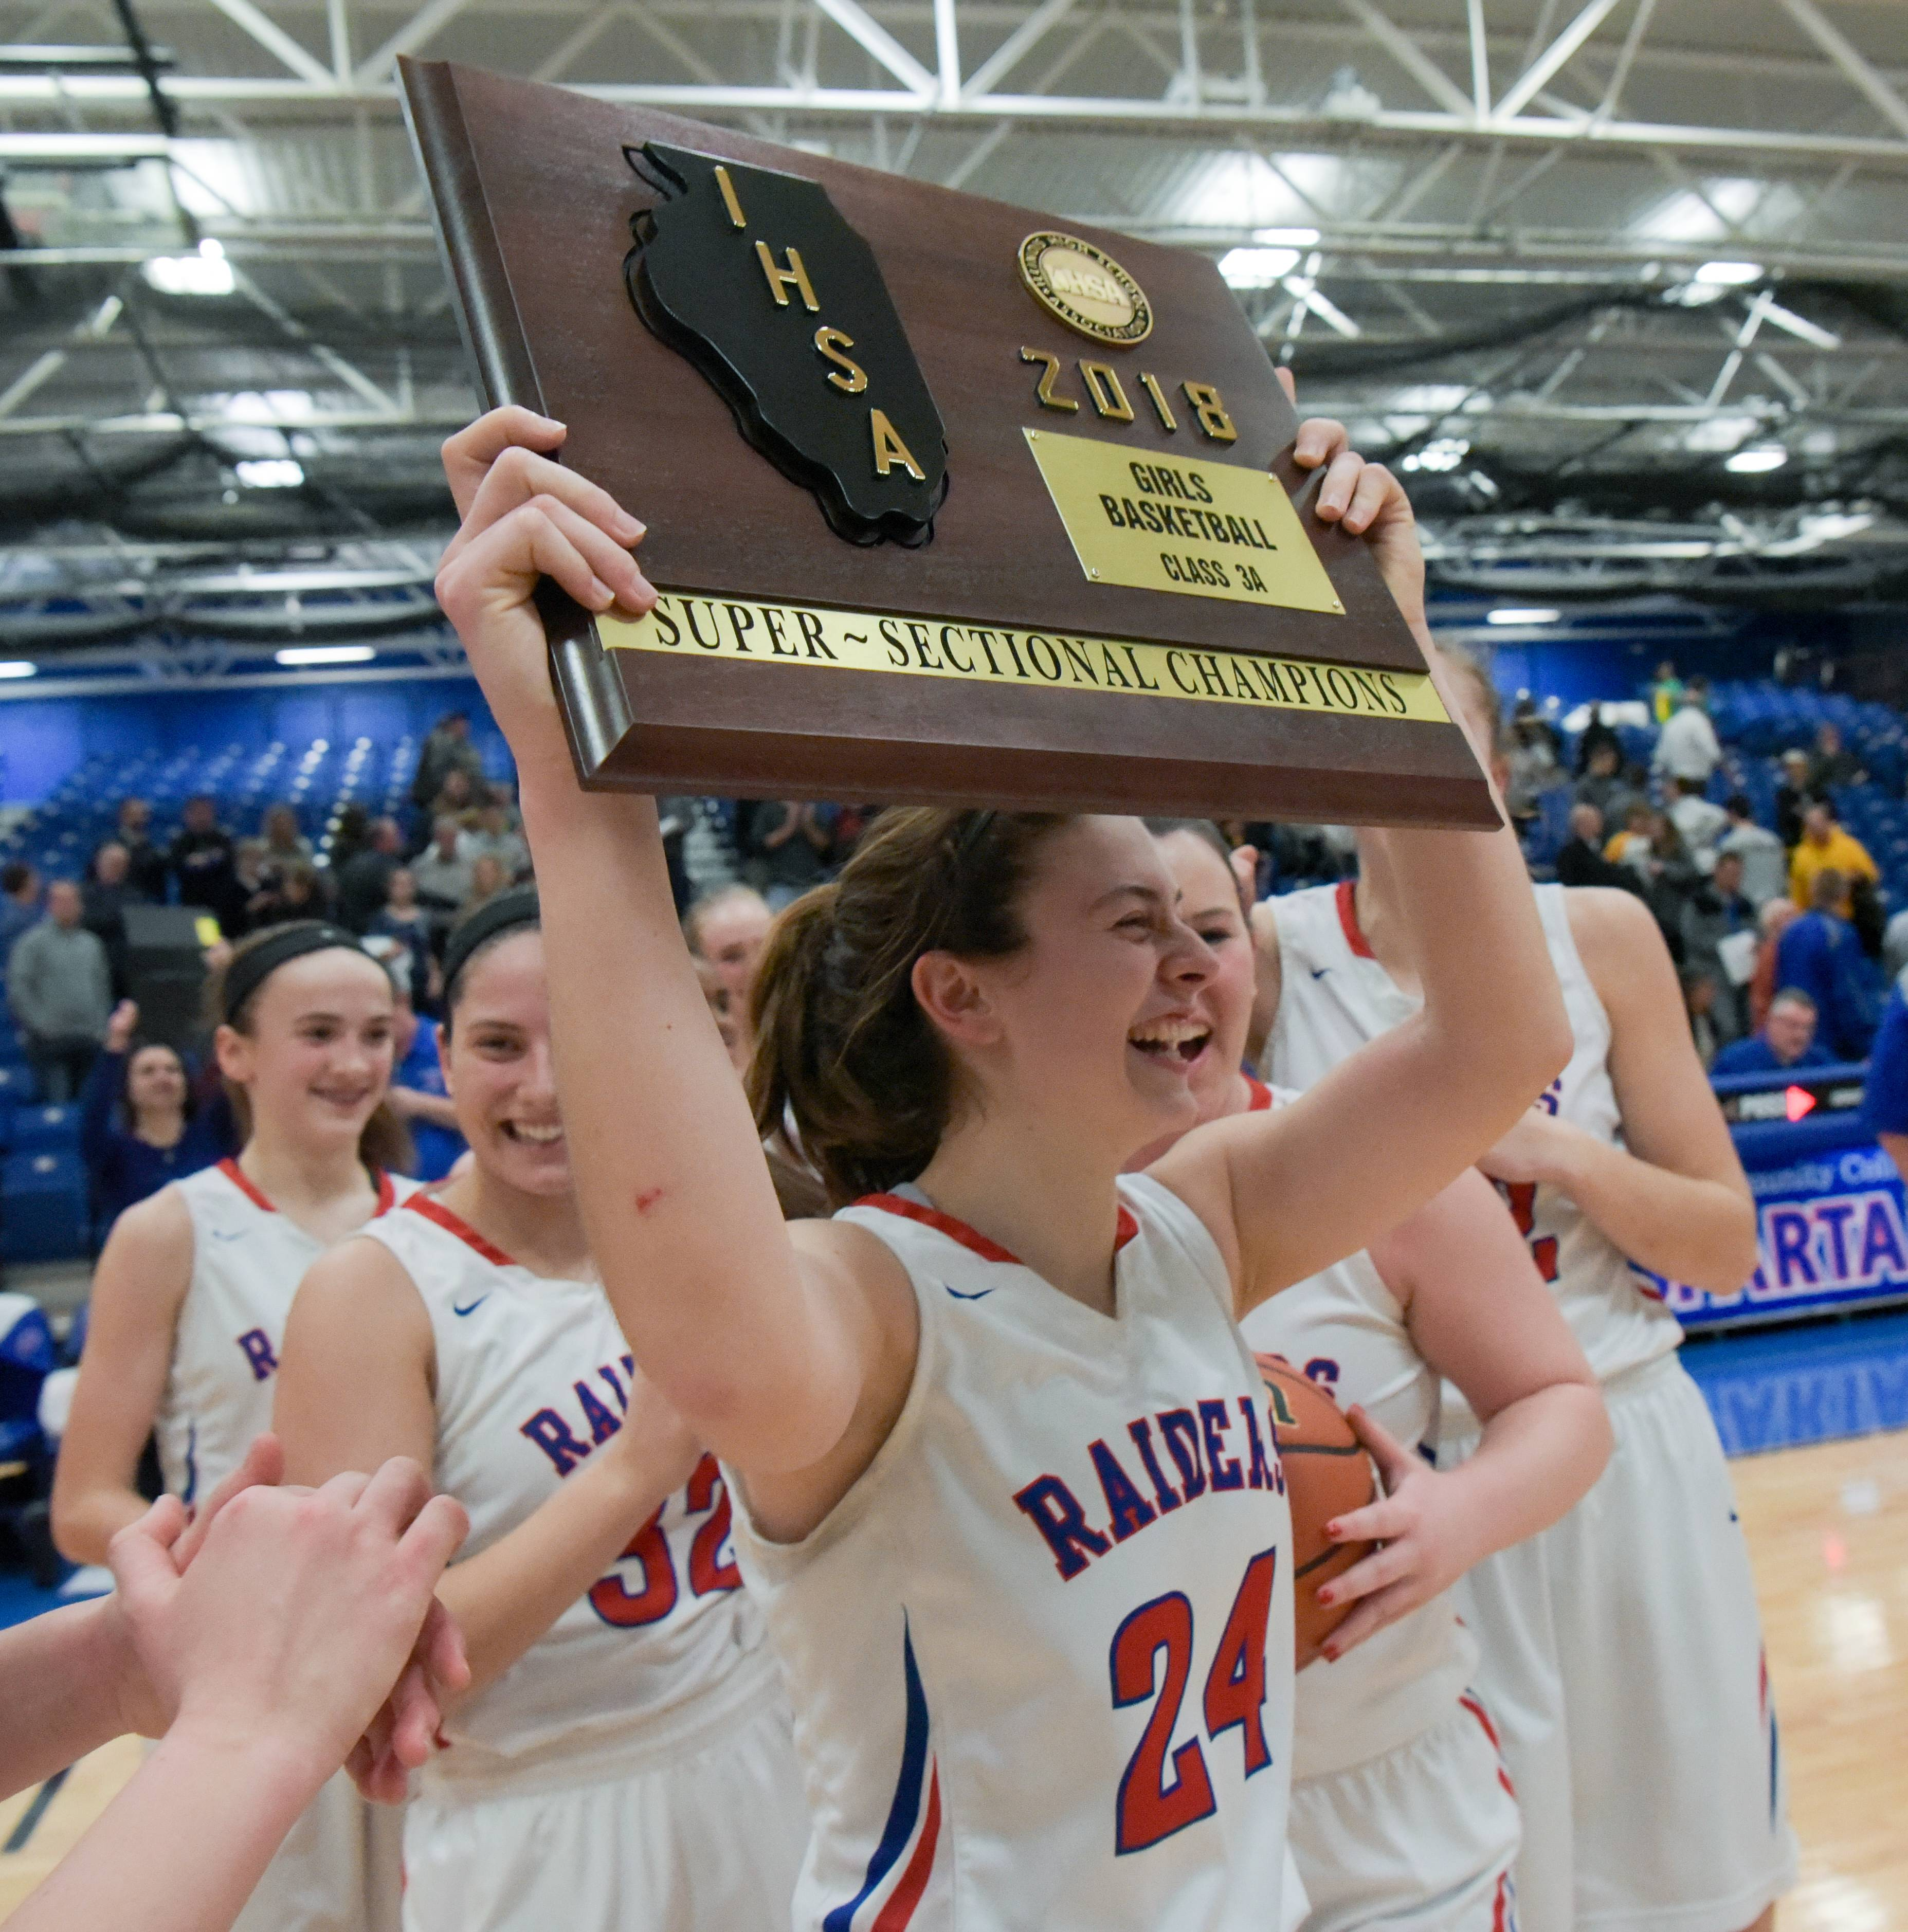 Images: Glenbard South vs. Carmel Catholic, Class 3A girls supersectional basketball